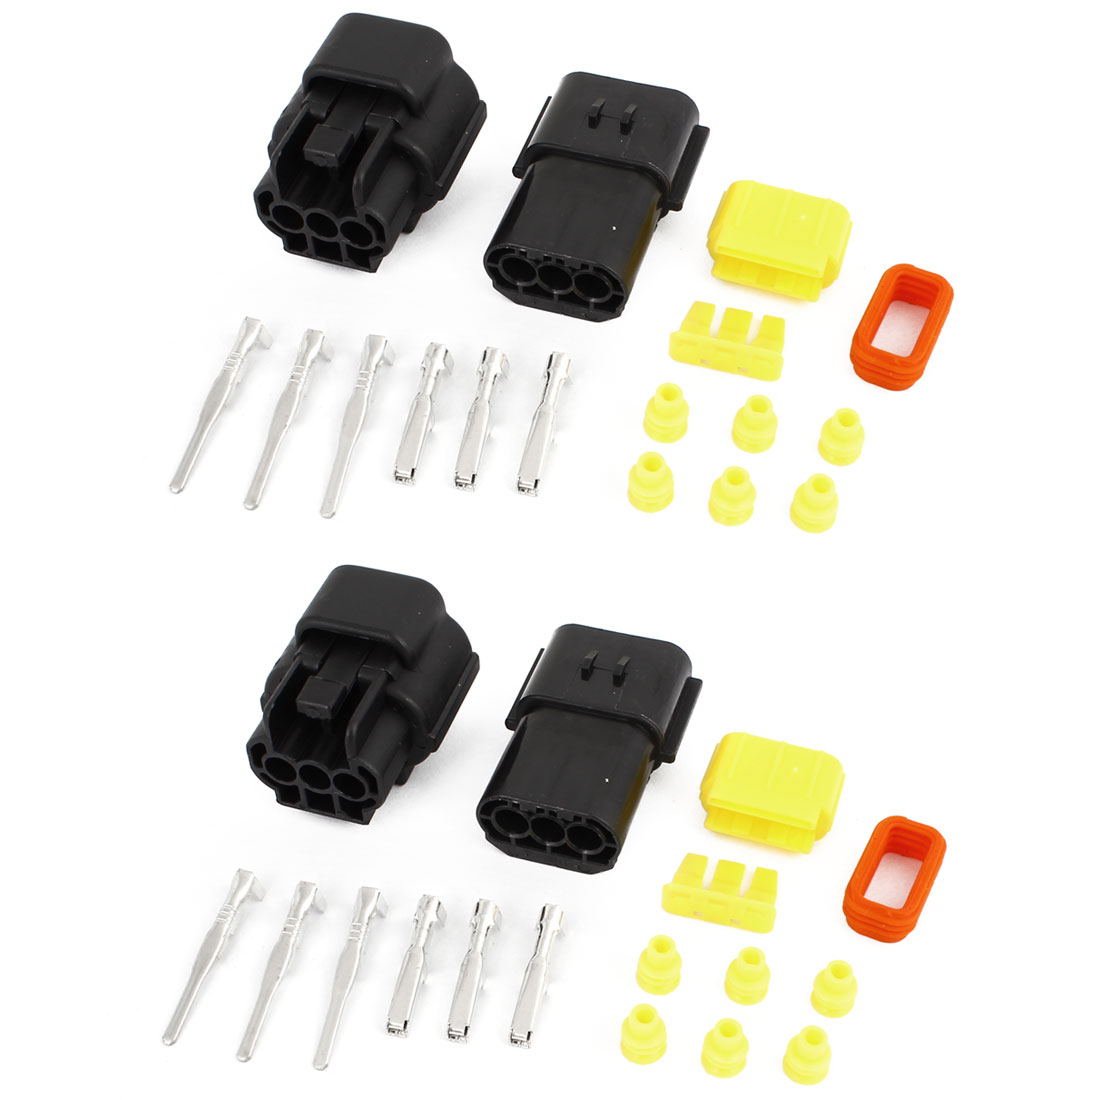 2 Set 3-Terminals 3 Positions Sealed Waterproof Cable Connectors for Car Auto Stereo